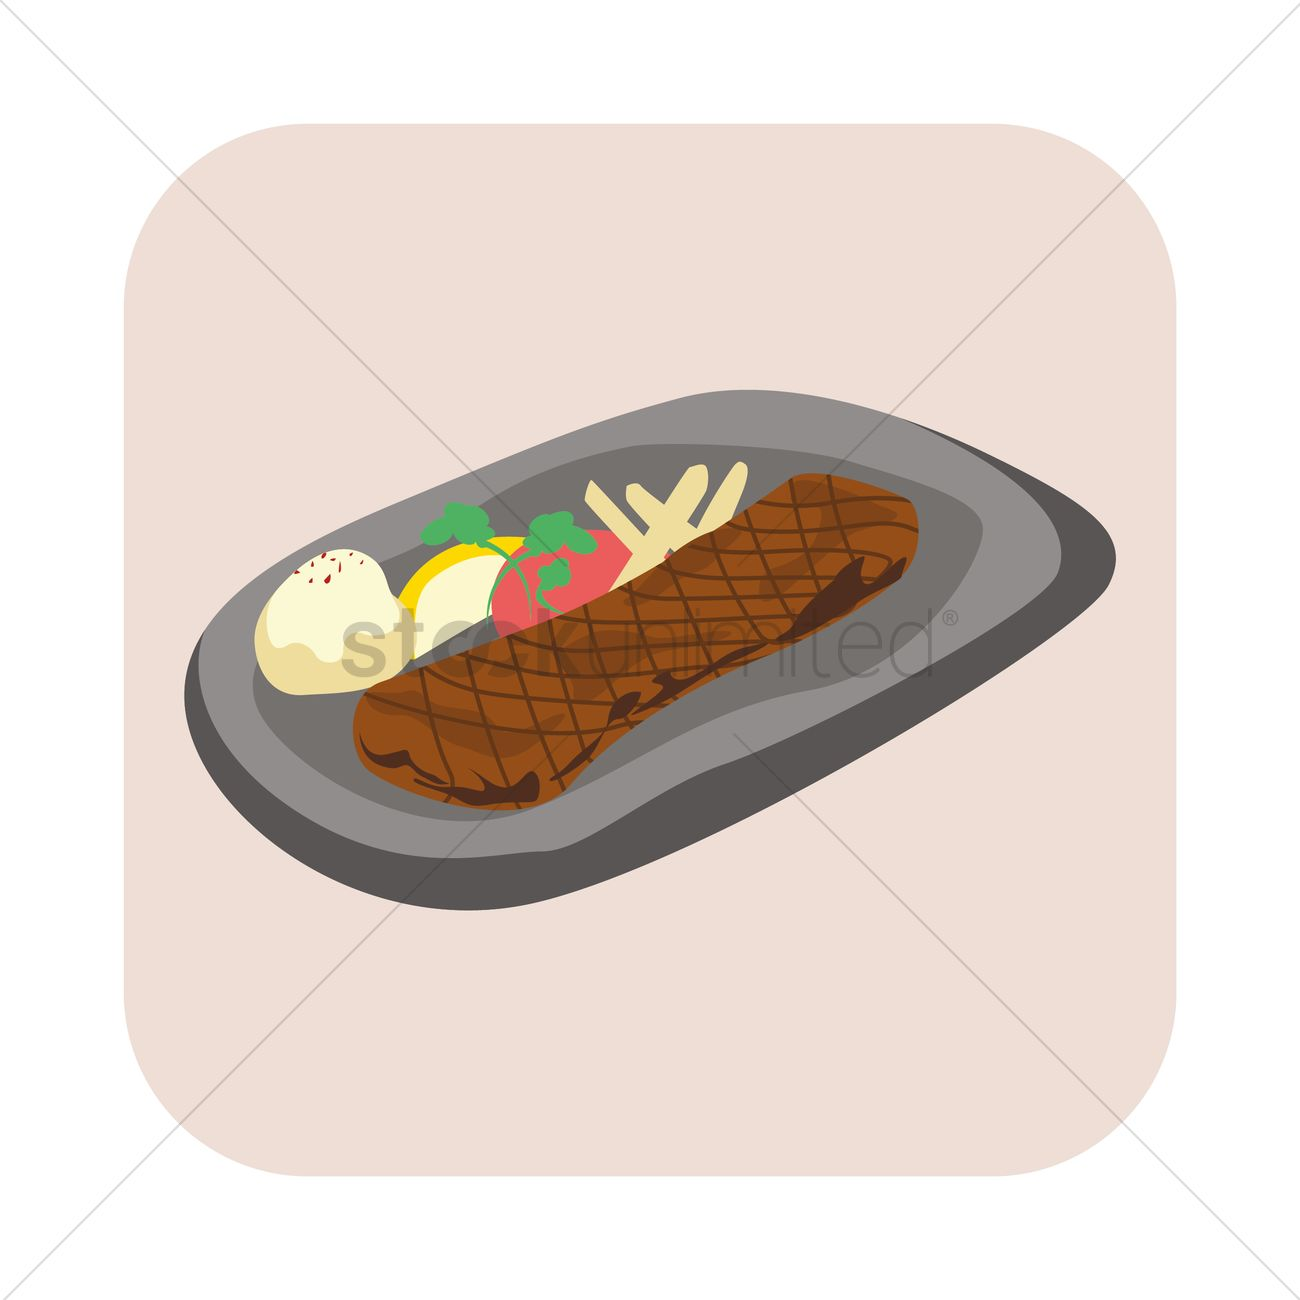 Sizzling plate clipart.